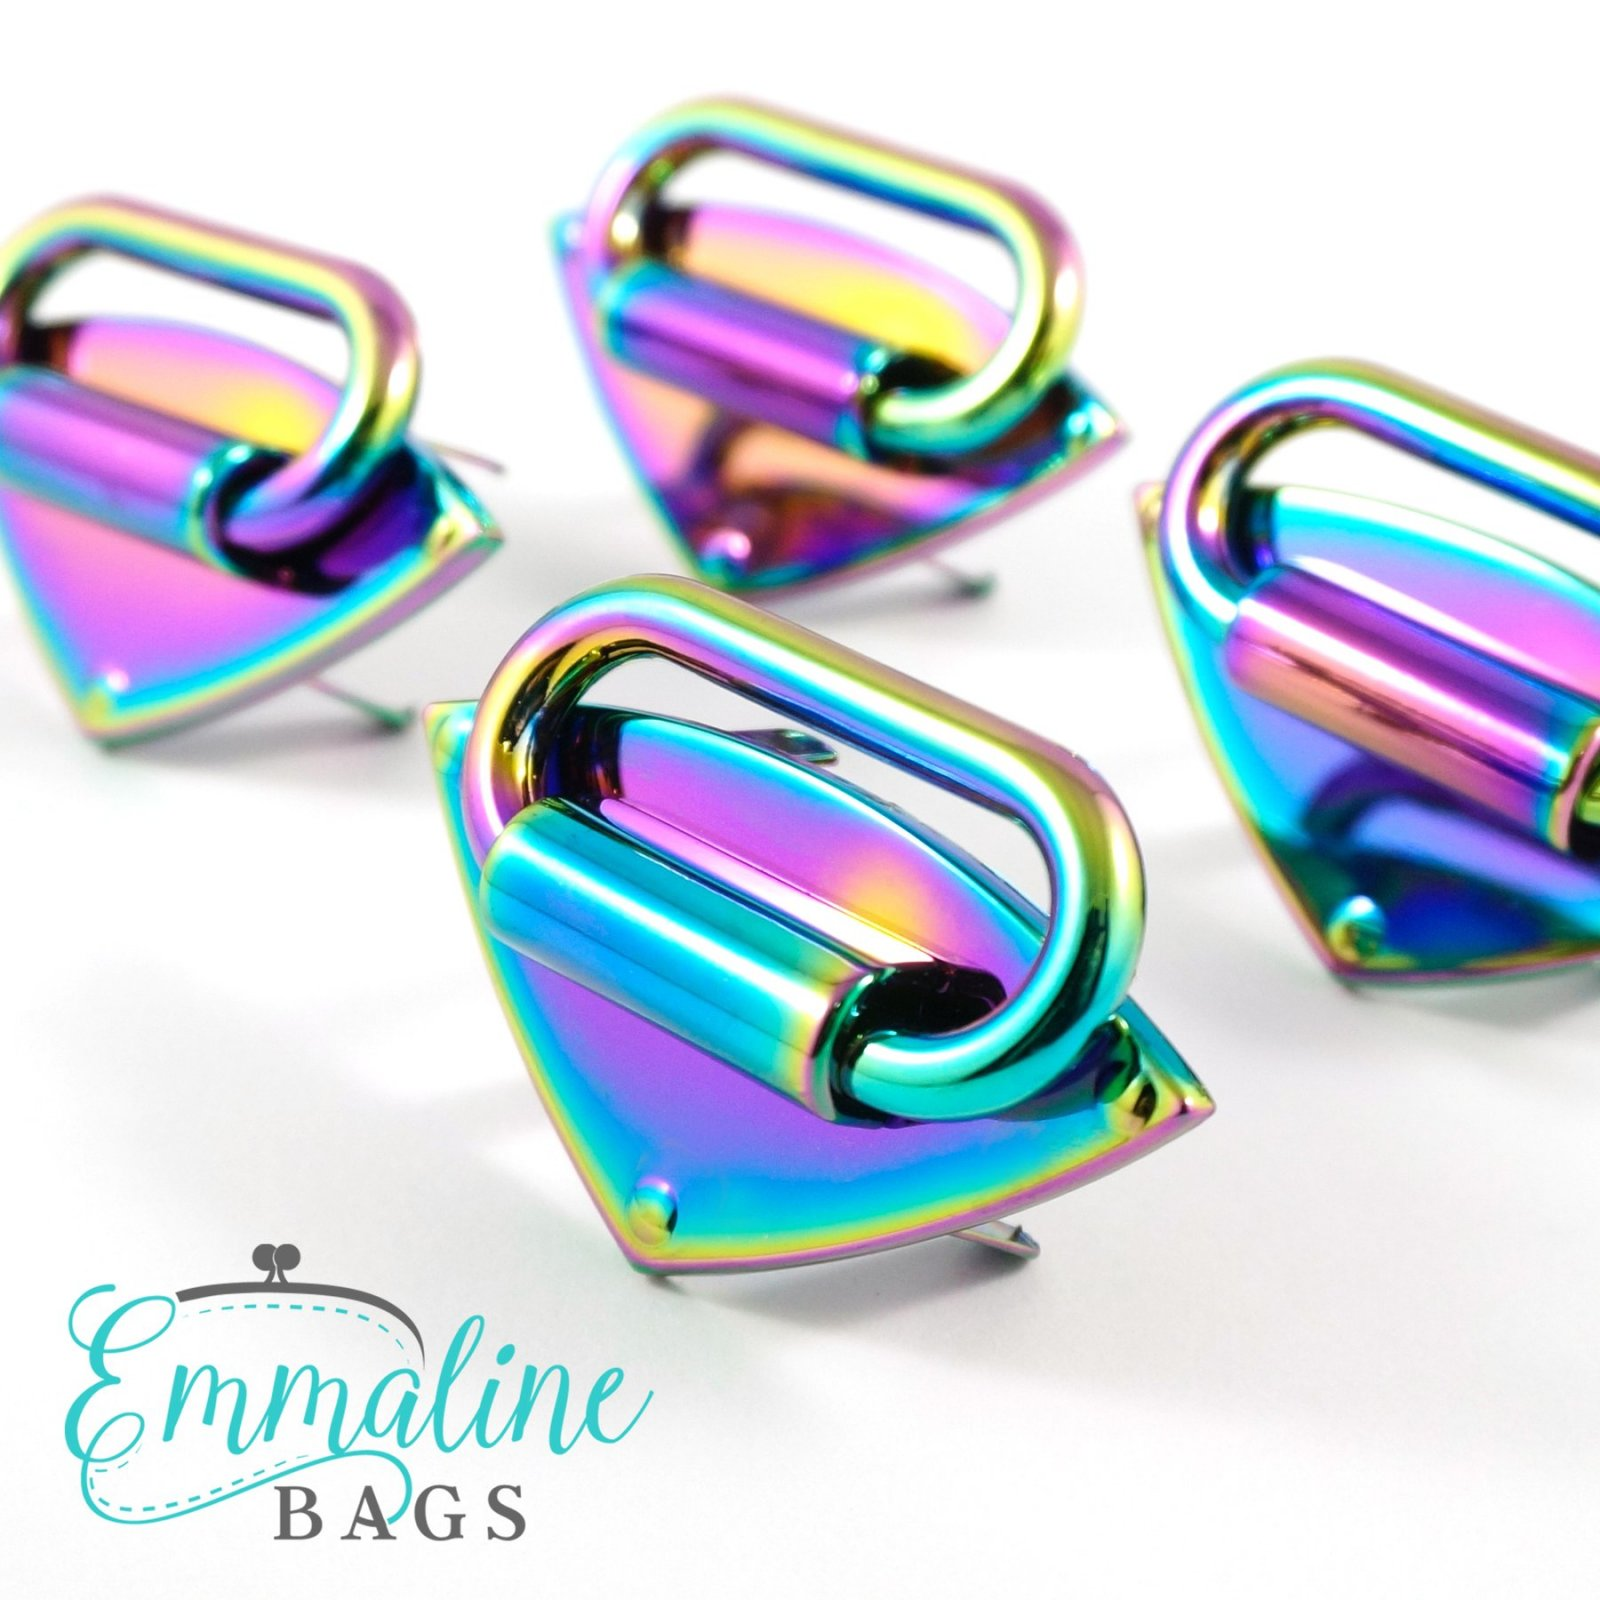 Diamond Strap Anchor- Iridescent Rainbow 4 Pack